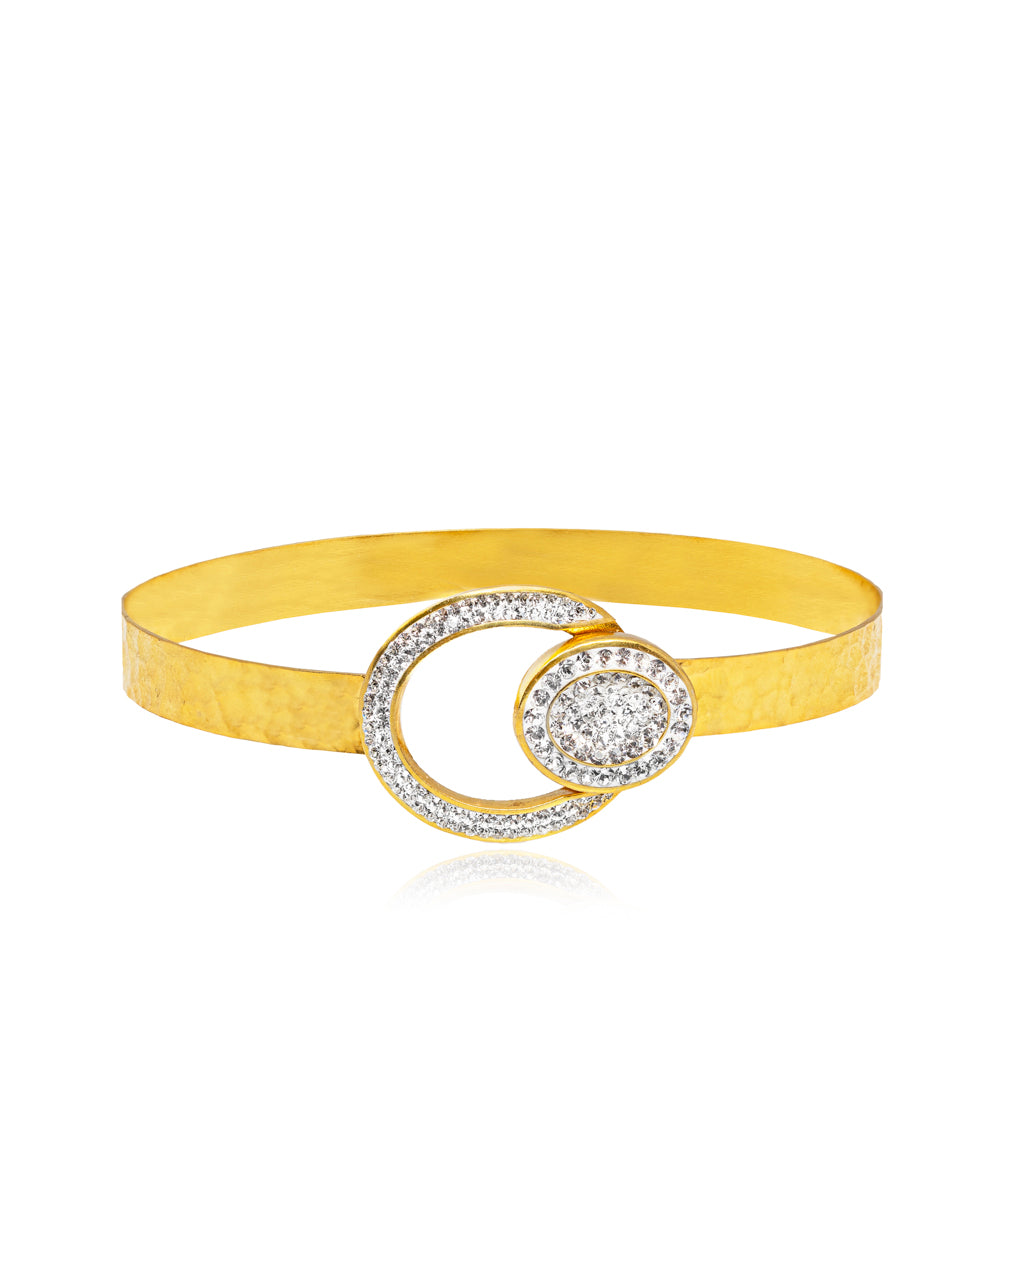 Oval Crystal Bangle Bracelet